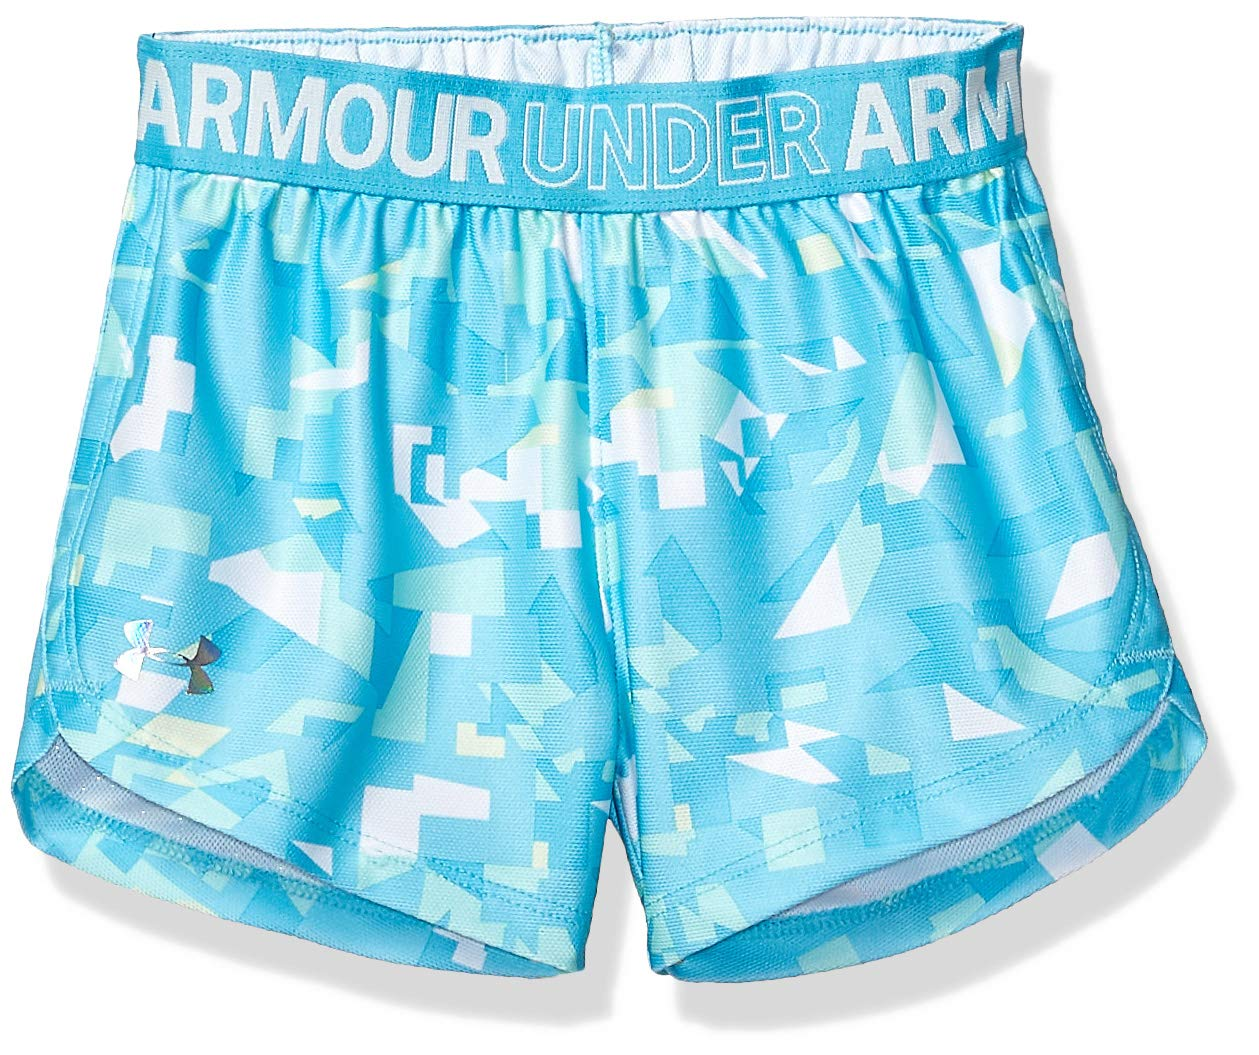 Under Armour Toddler Girl's Play Up Short Shorts, Venetian Blue, 2T by Under Armour